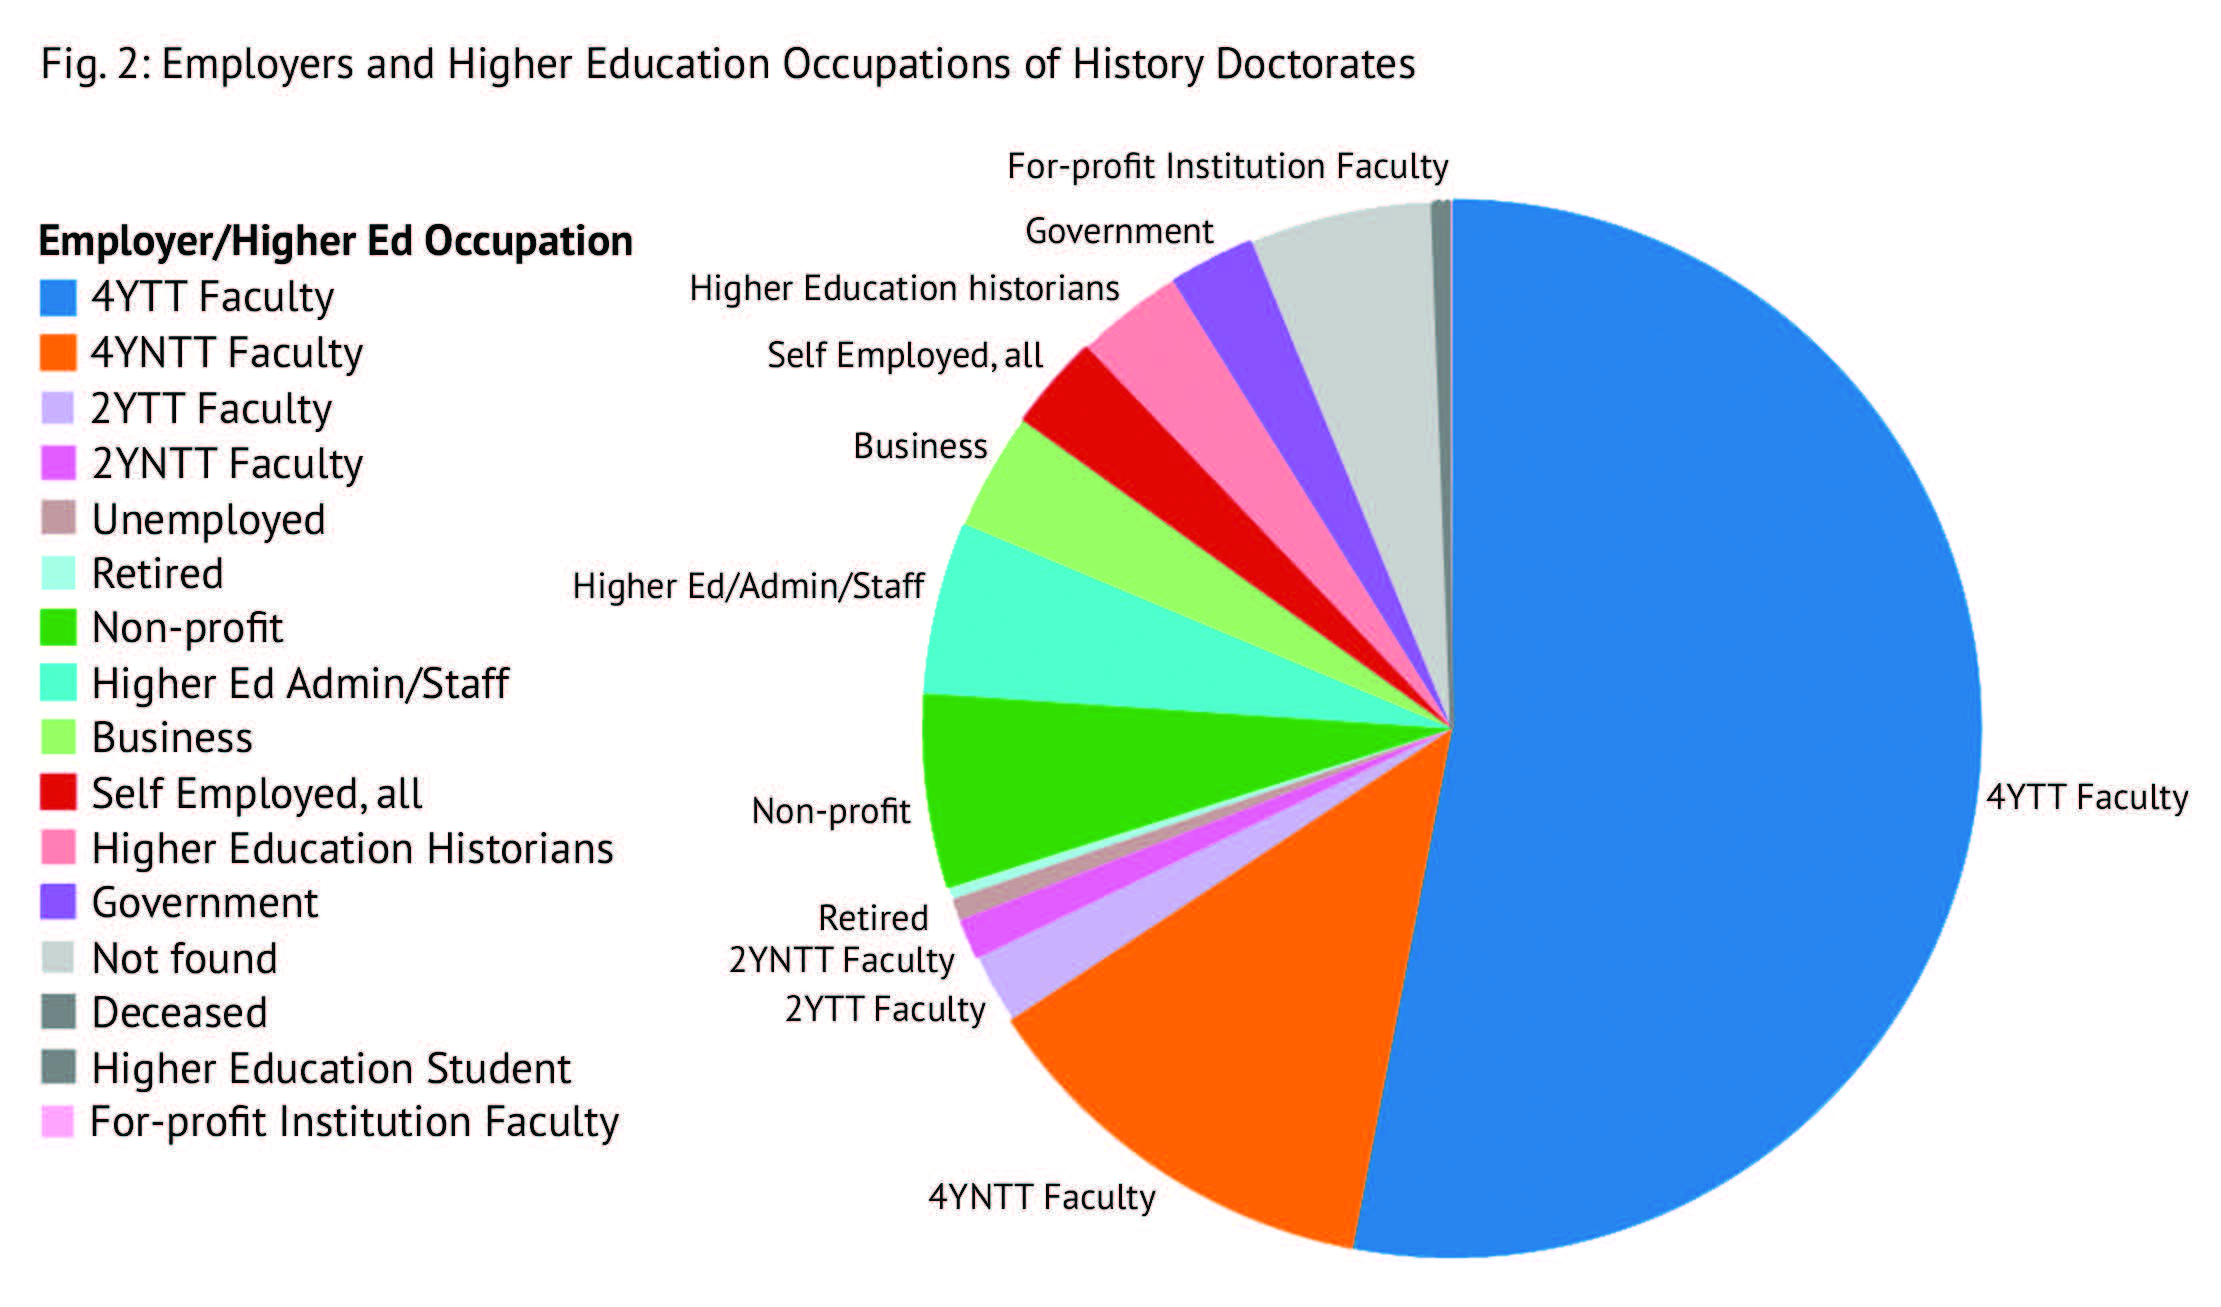 History doctorates work in all employment sectors. Around three-quarters of the doctorates the AHA tracked are employed by institutions of higher education, most in teaching positions. In the pie chart above, these higher education employees are divided into more specific occupational categories, including four- and two-year tenure-track and non-tenure-track faculty (labeled 4YTT, 4YNTT, 2YTT, and 2YNTT).